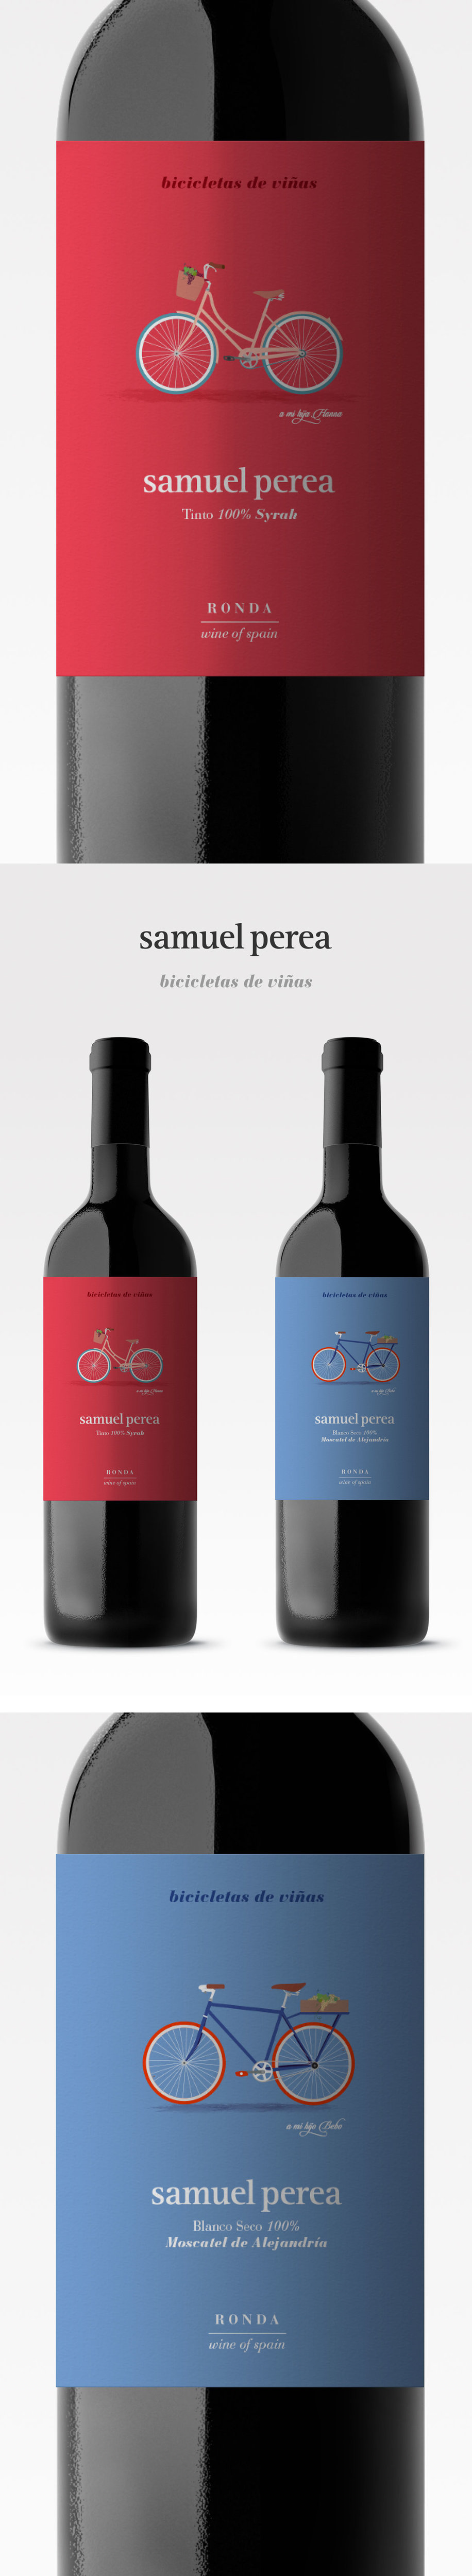 Descripcion Offline Tv Film Diseno De Etiqueta De Vino Para Samuel Perea Bicicletas De Vinas Video Tv Film Wine Label Design Wine Label Wine Design